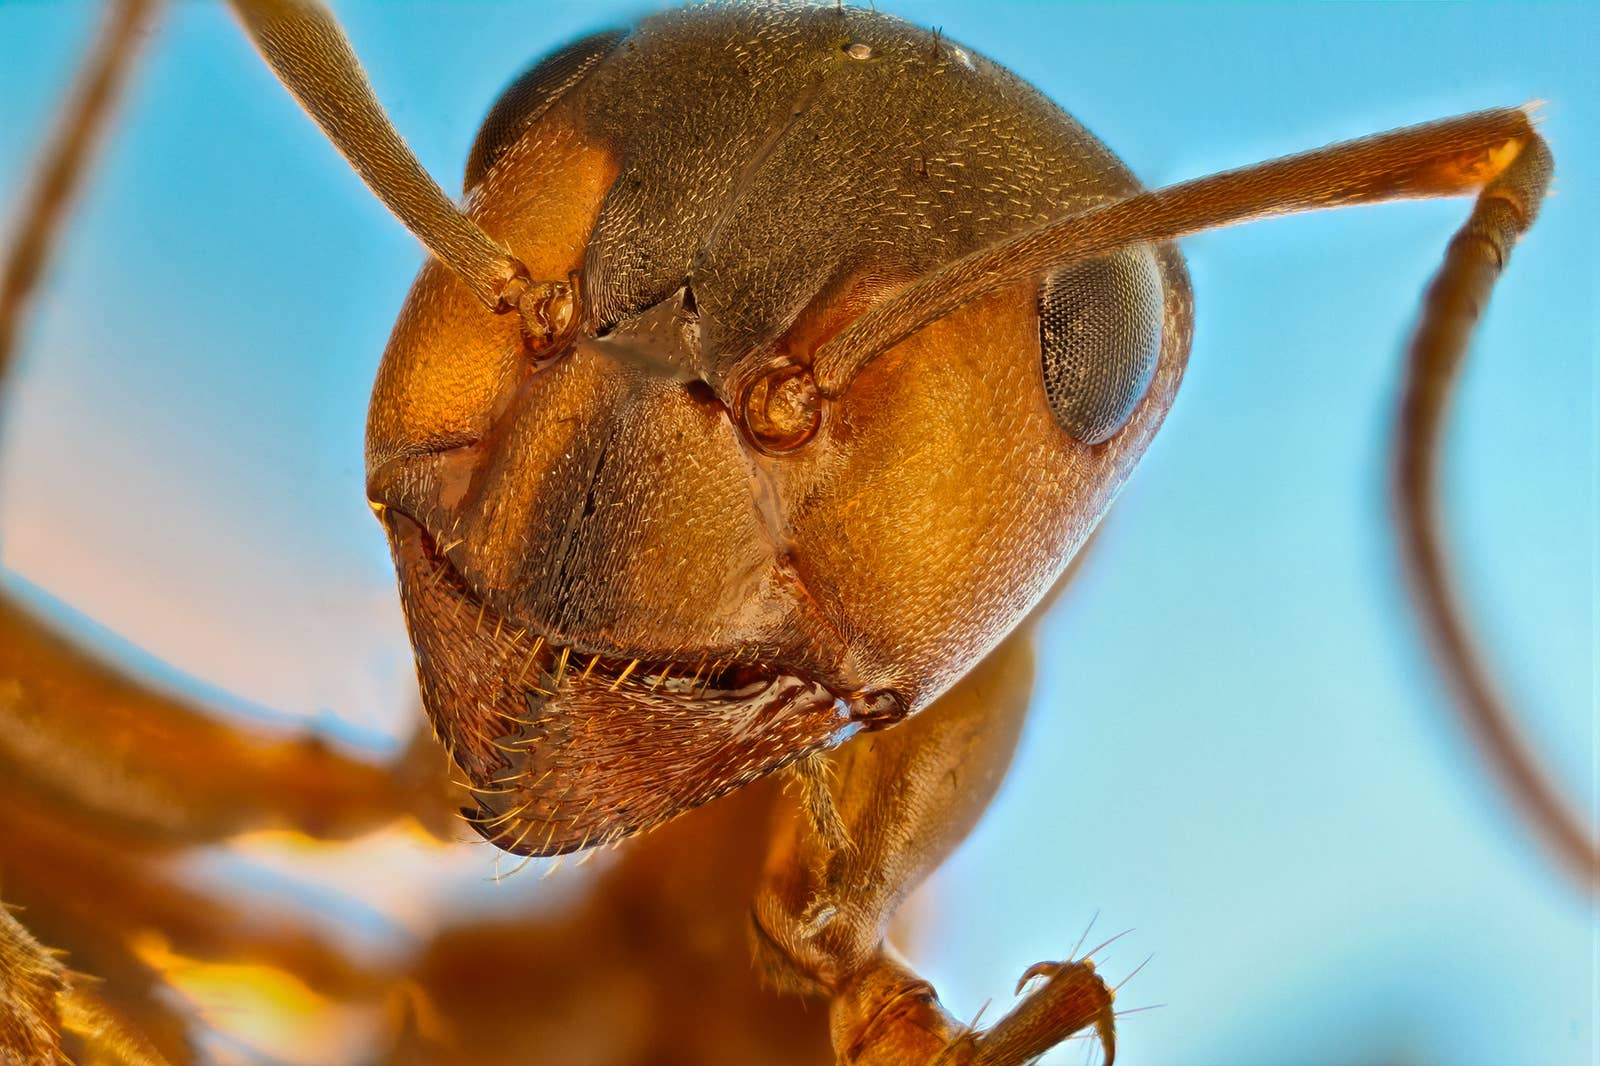 A close-up of an ant looming over the camera with a blue background